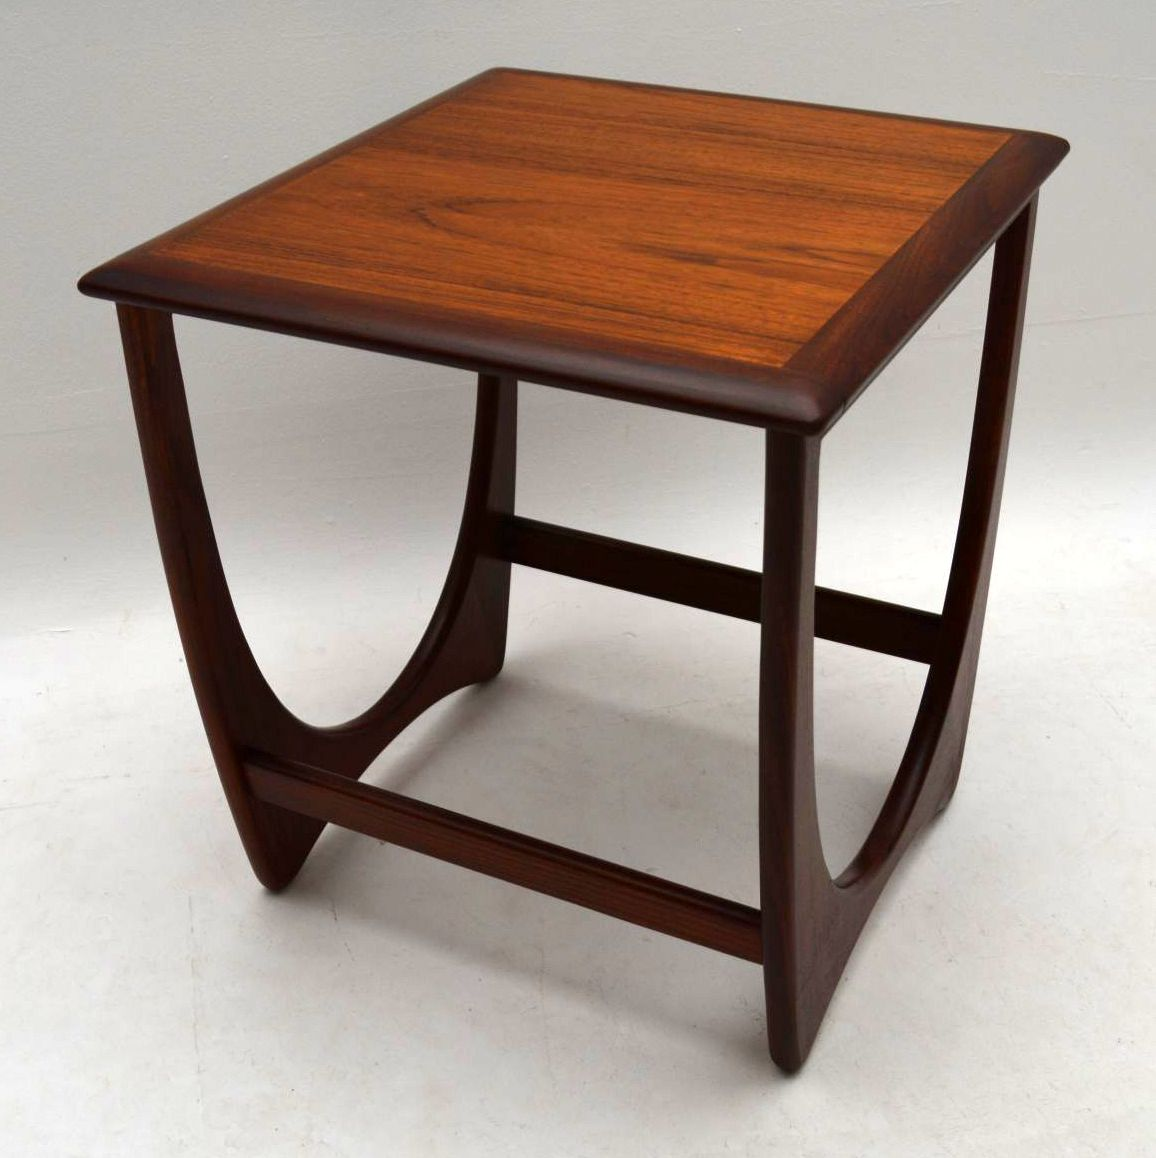 Second Hand Teak Coffee Table: 1960's Pair Of Teak Side Tables By G- Plan